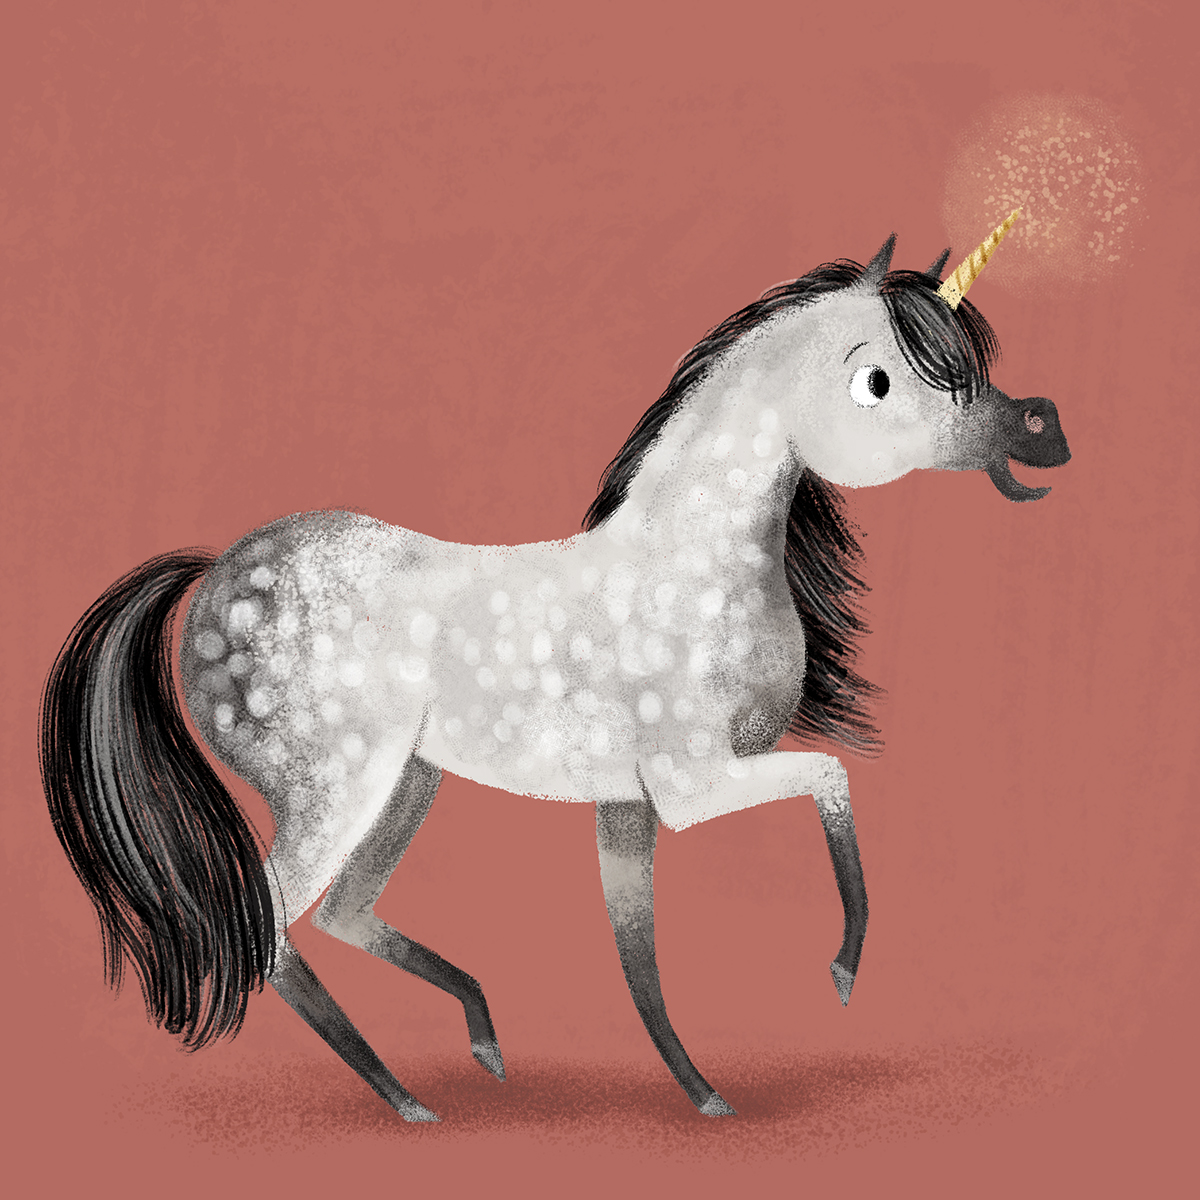 junicorn1.jpg